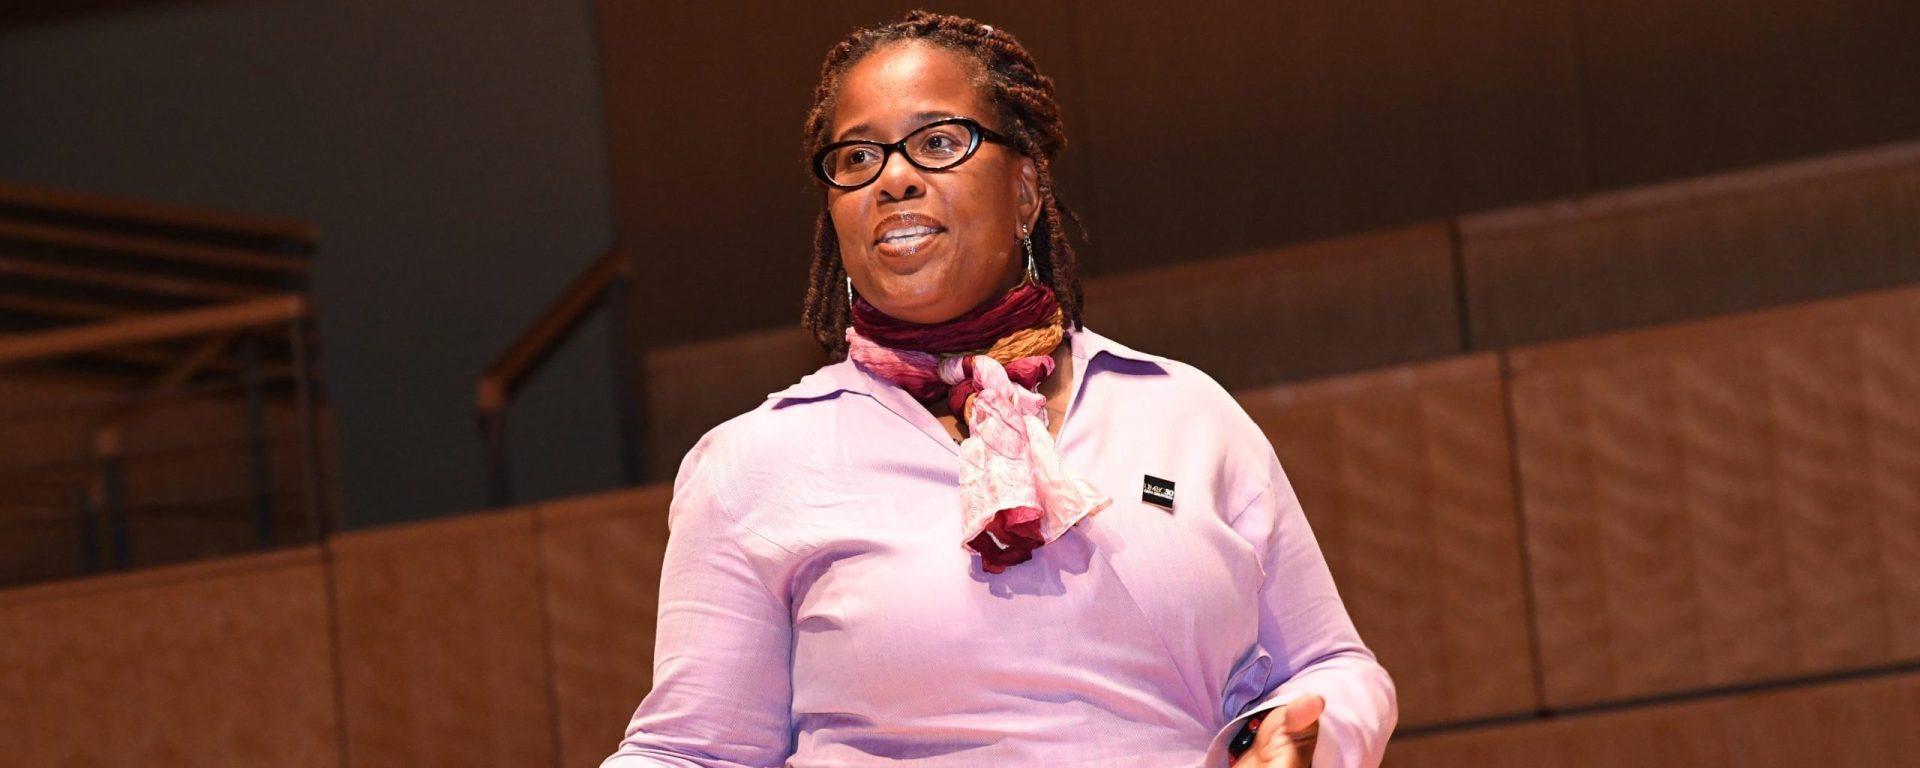 Black woman with black hair pulled back, wearing glasses, and a pink dress shirt and scarf looks towards the right.